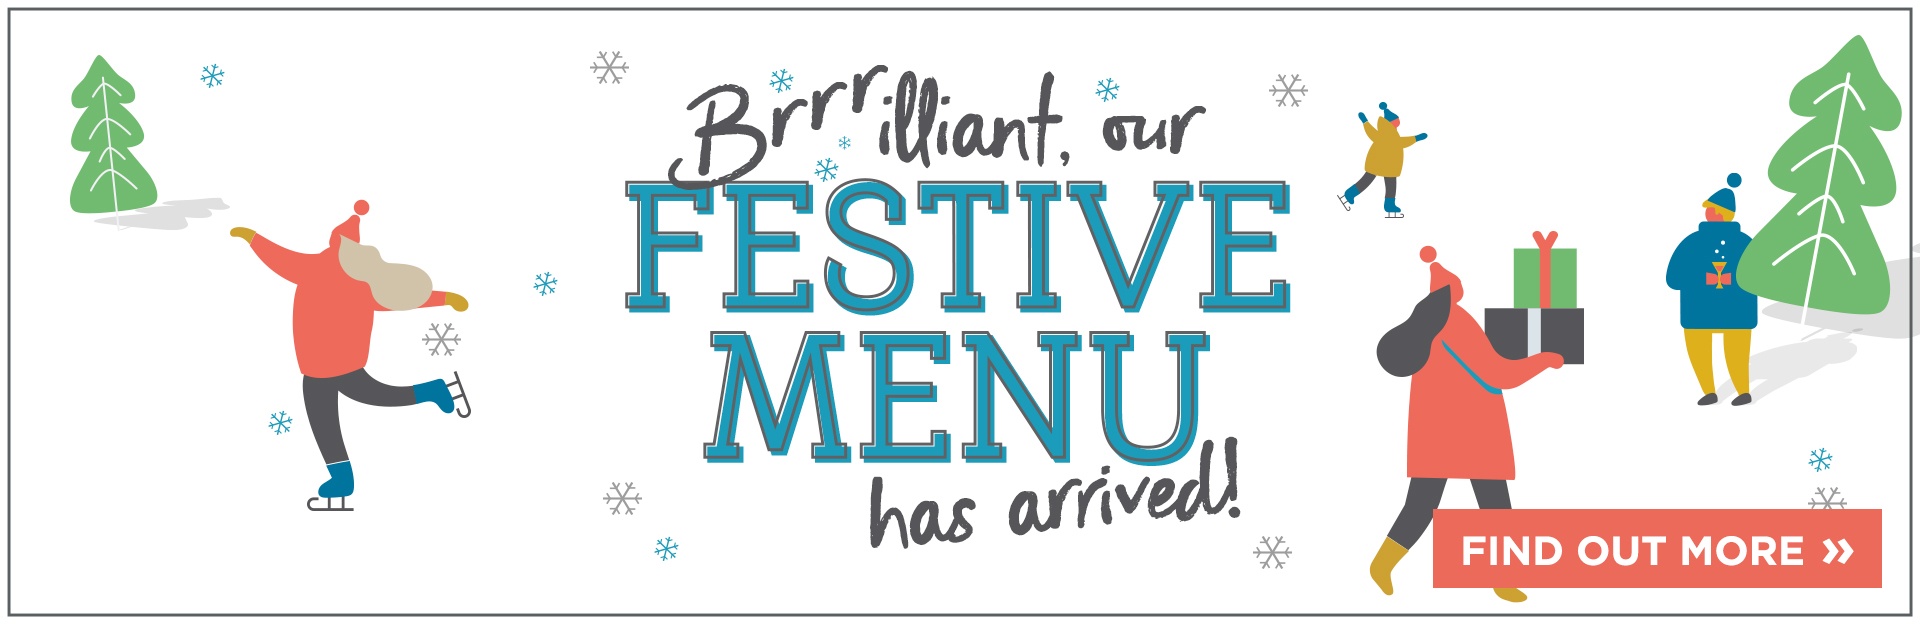 Festive Menu at The Tramway